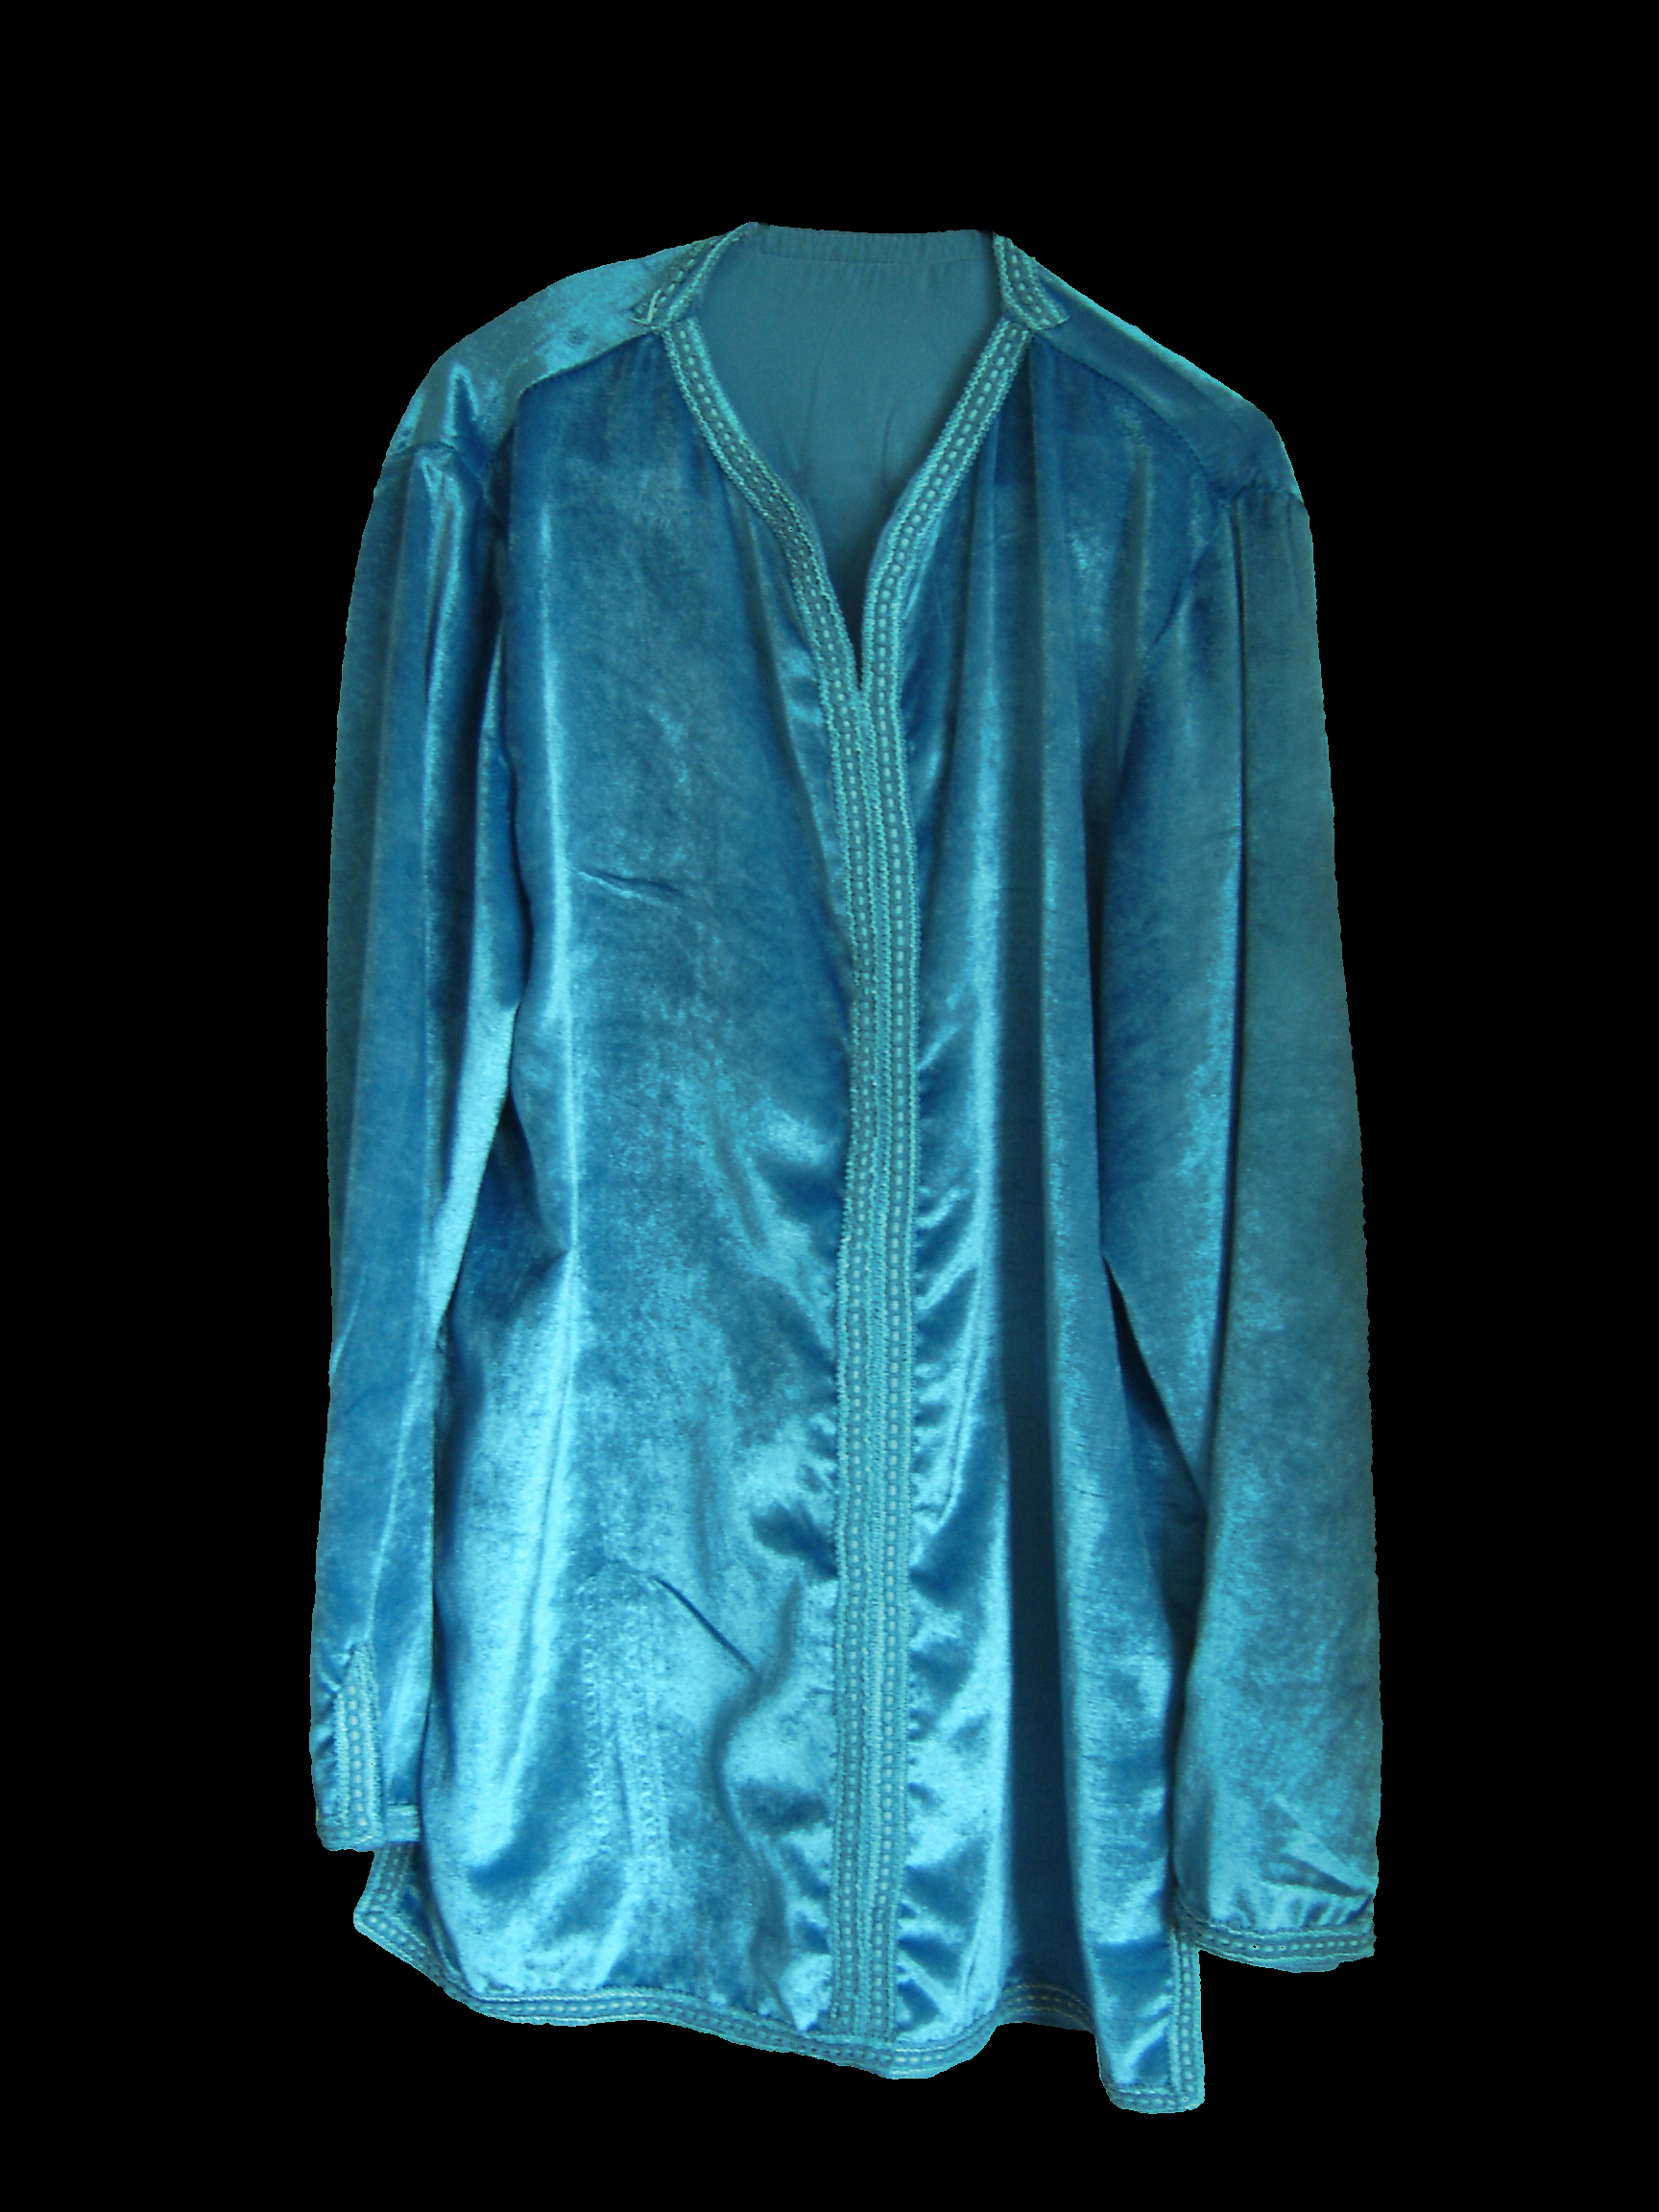 Ice-blue velvet Moroccan shirt